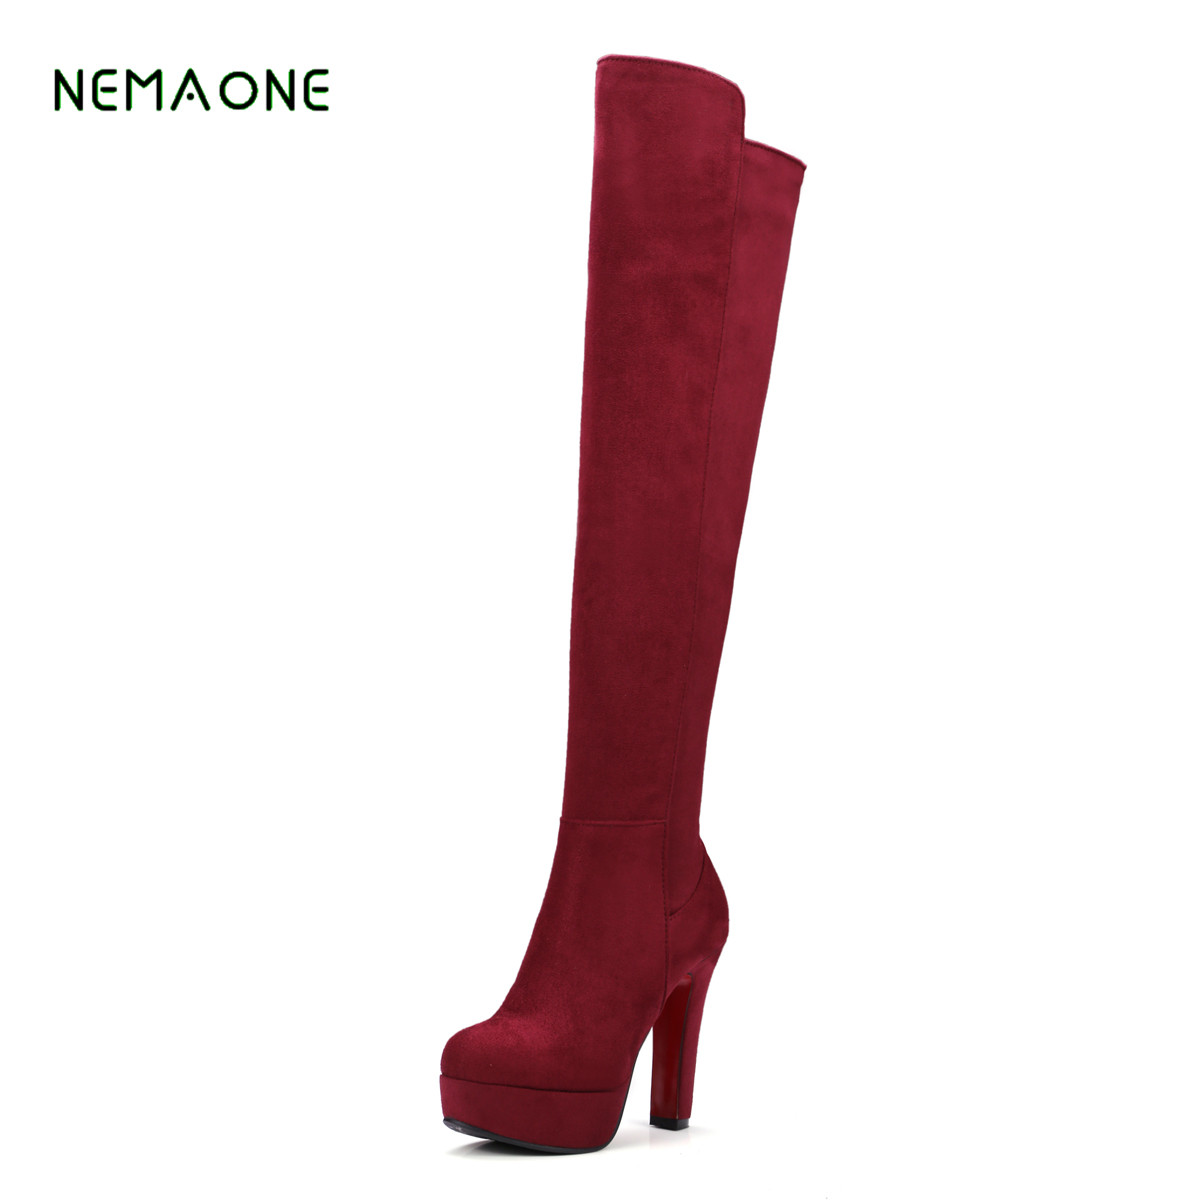 NEMAONE women shoes sexy pointed toe suede slim boots high heels shoes woman side zipper over the knee thigh high women boots women sexy black embossed python leather women thigh high boots pointed toe stiletto high heels back zipper over the knee boots